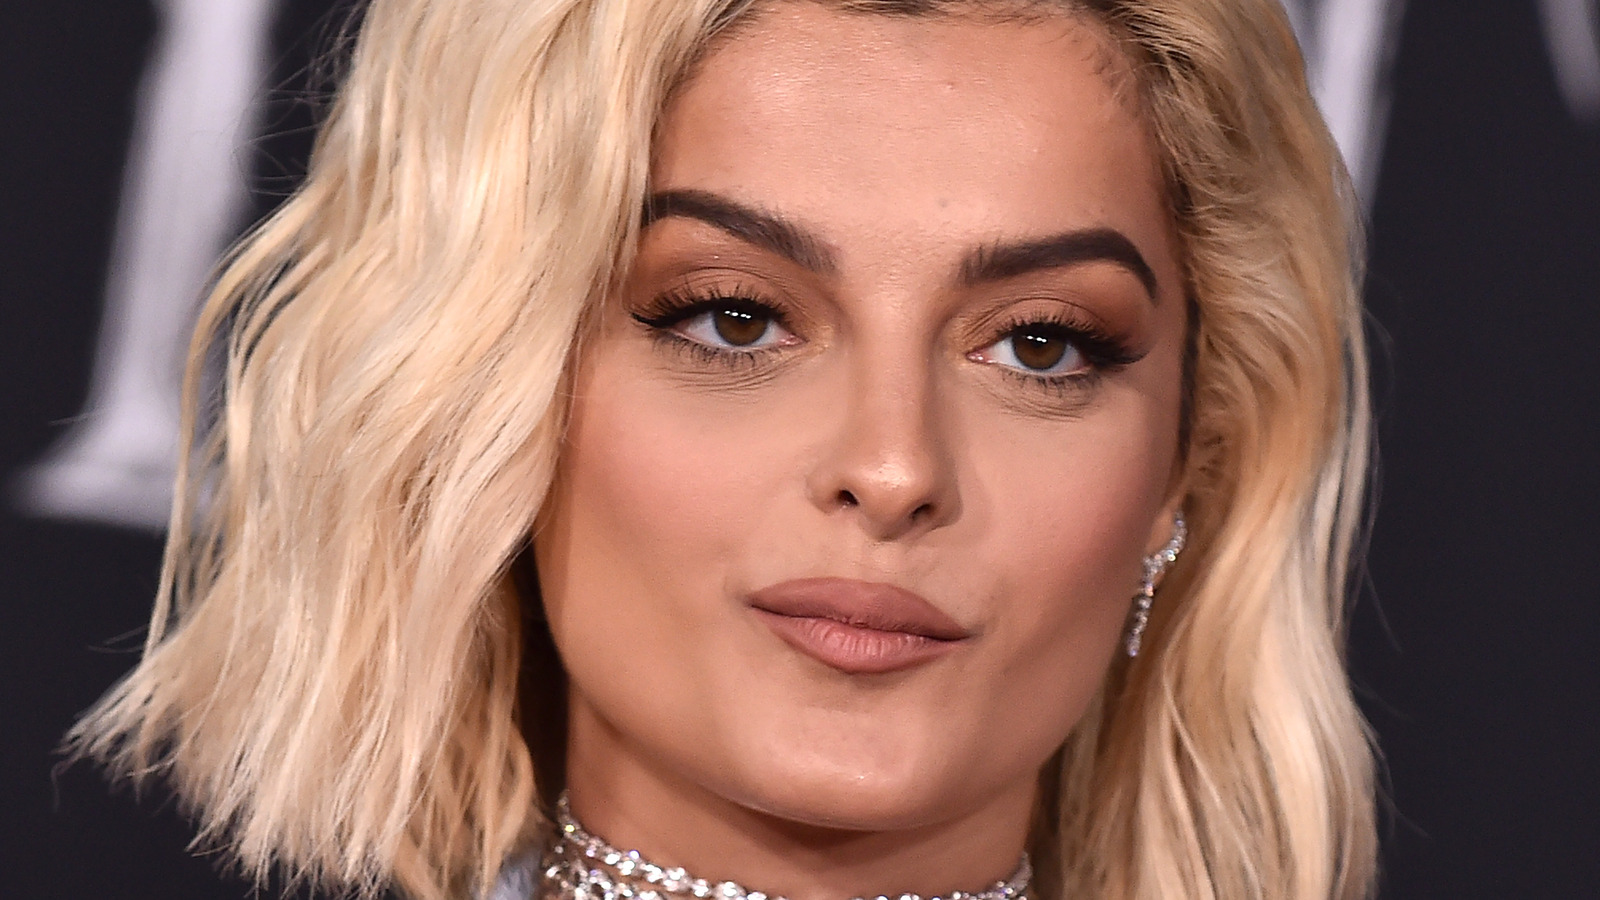 The Story About Dua Lipa And Rita Ora's Alleged Feud Bebe Rexha Responds